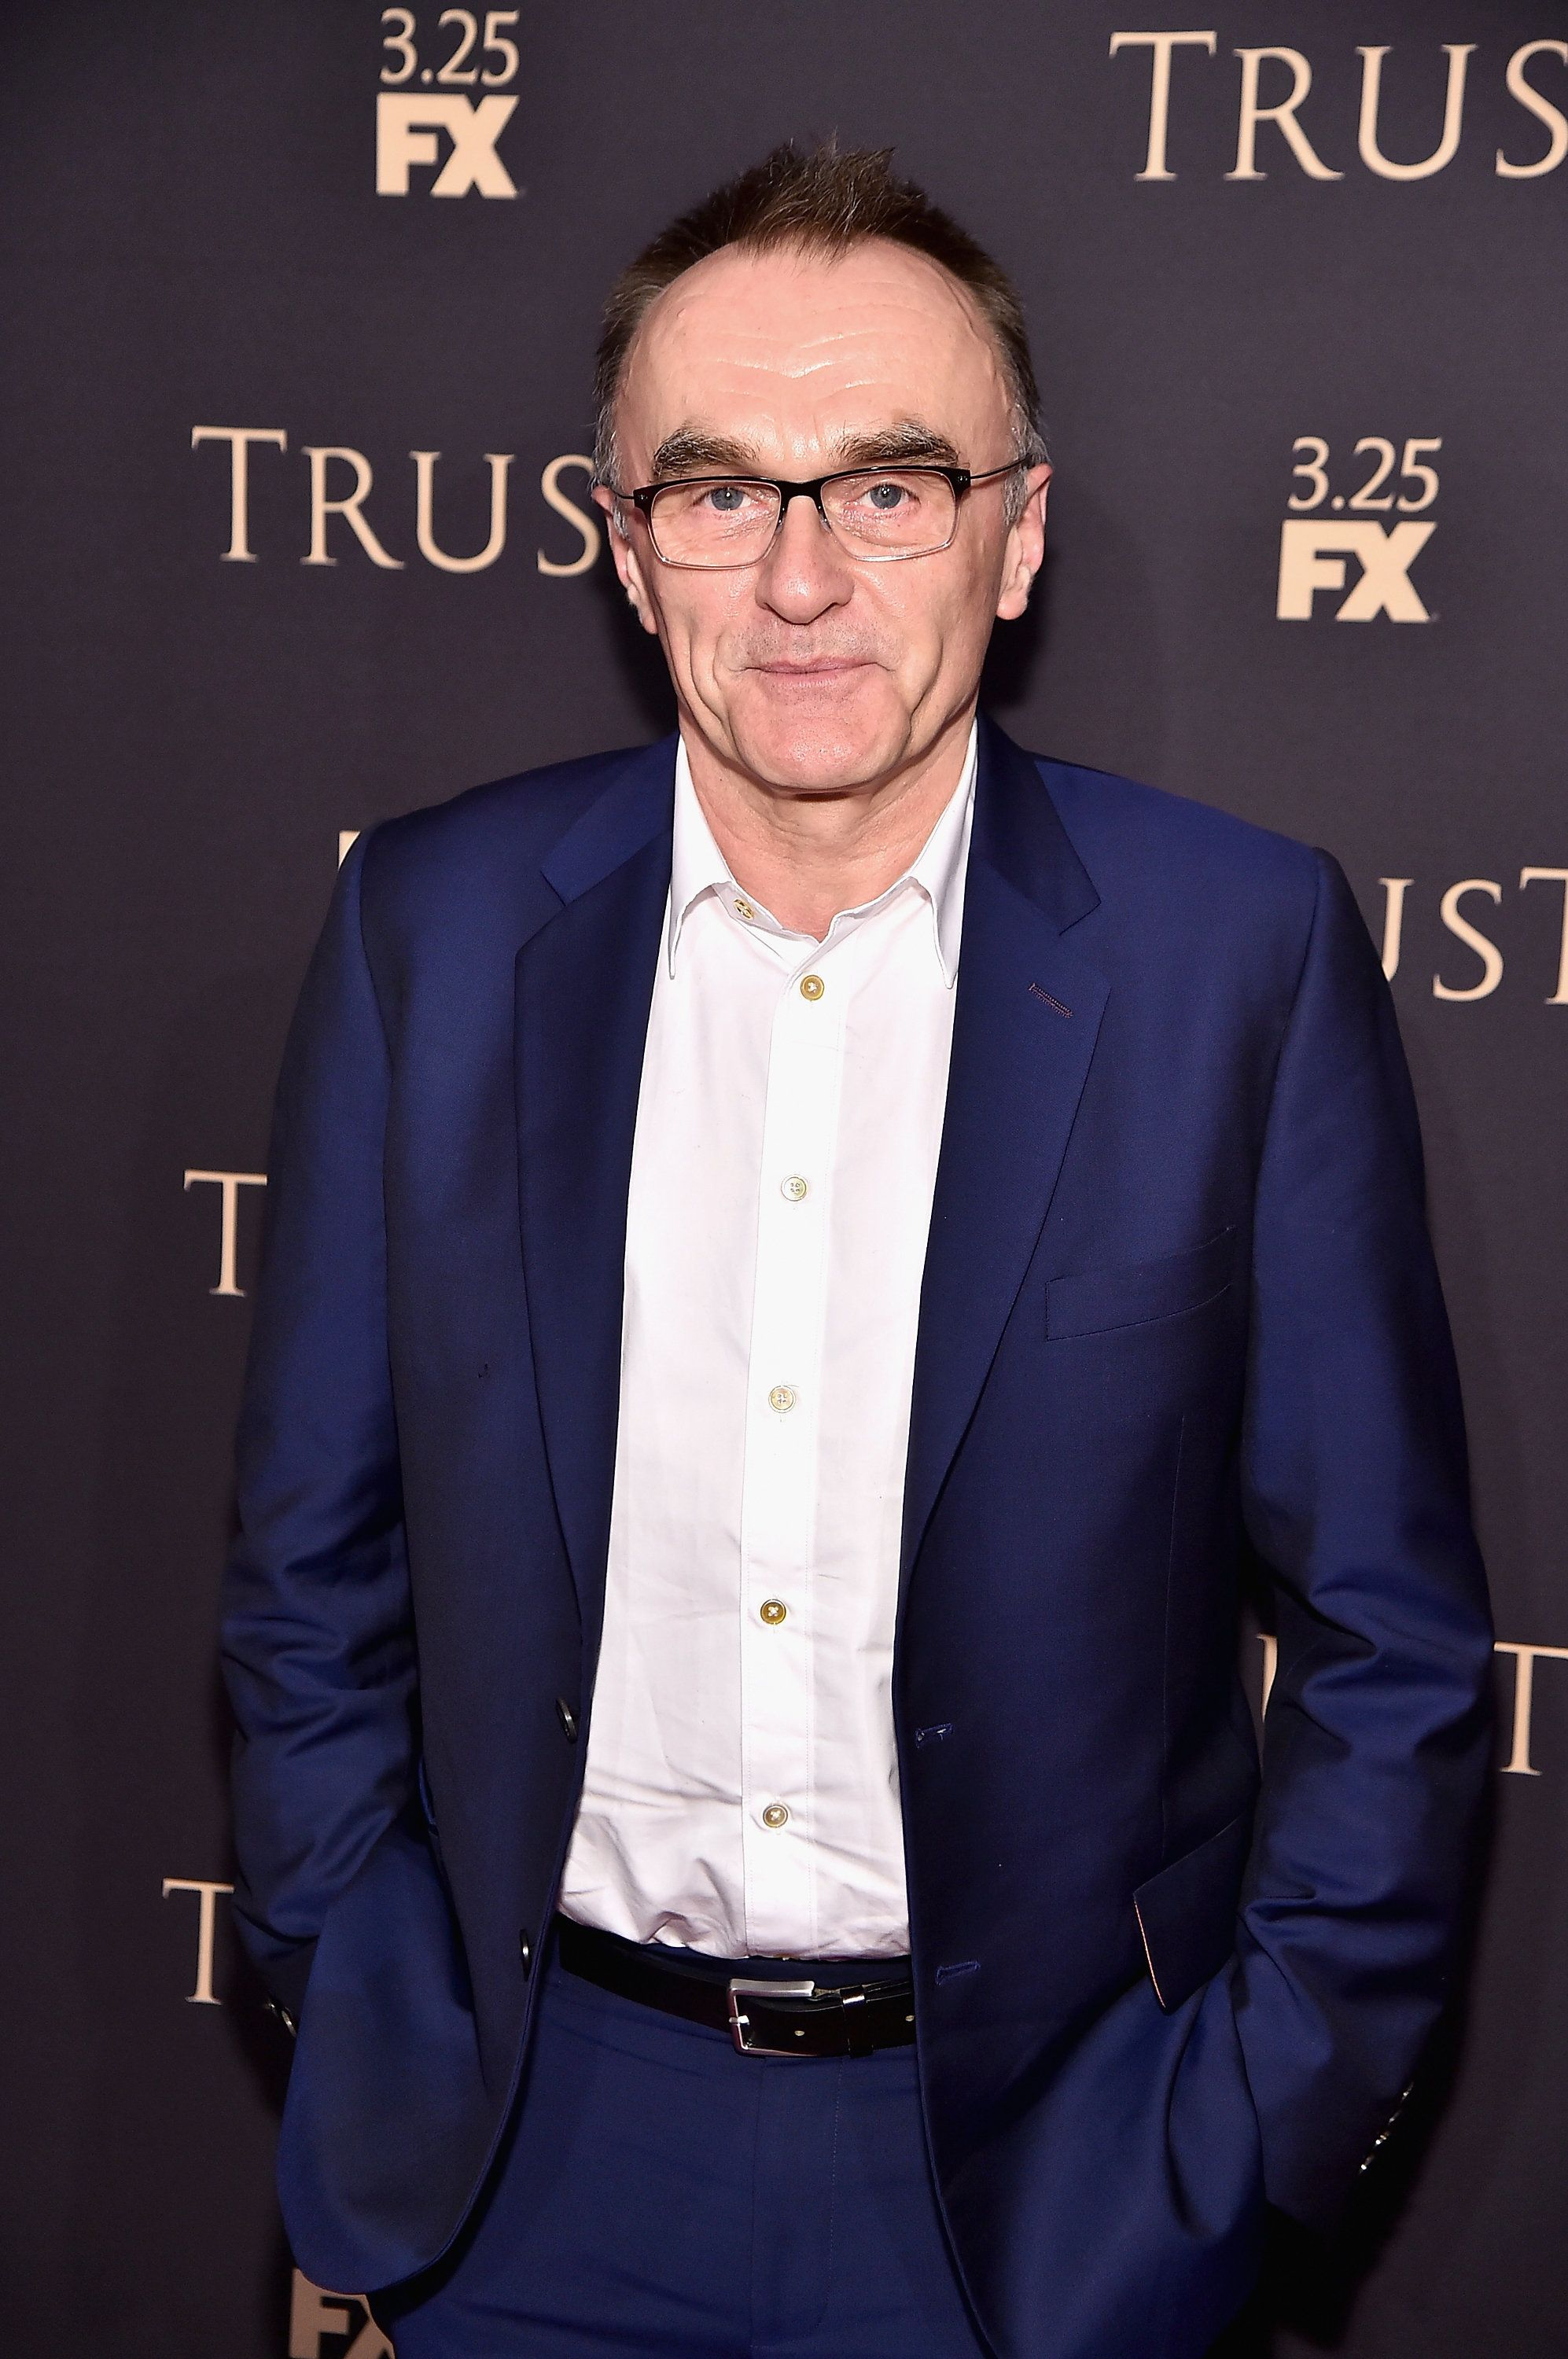 It's Official - Danny Boyle Confirmed To Direct The Next 'James Bond'